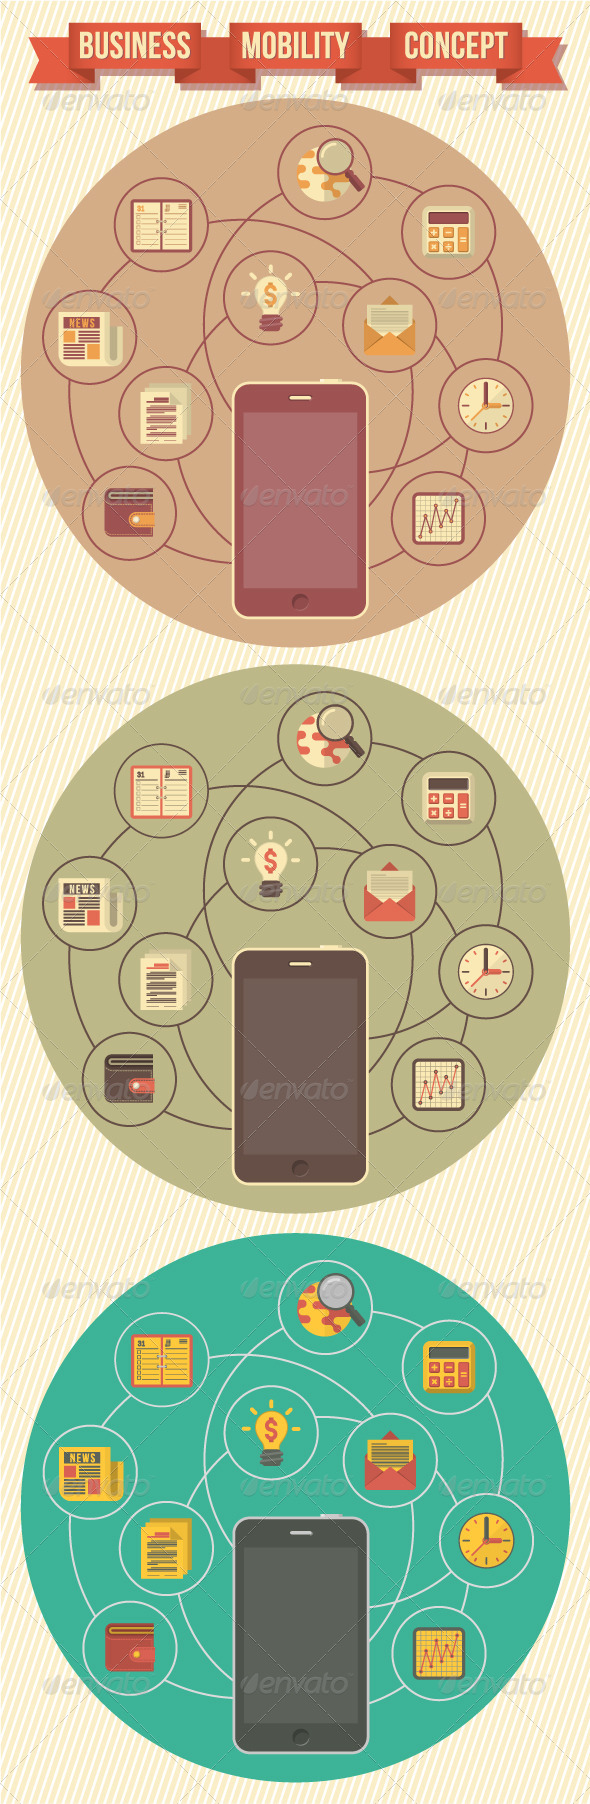 GraphicRiver Business Mobility Concept 5705684